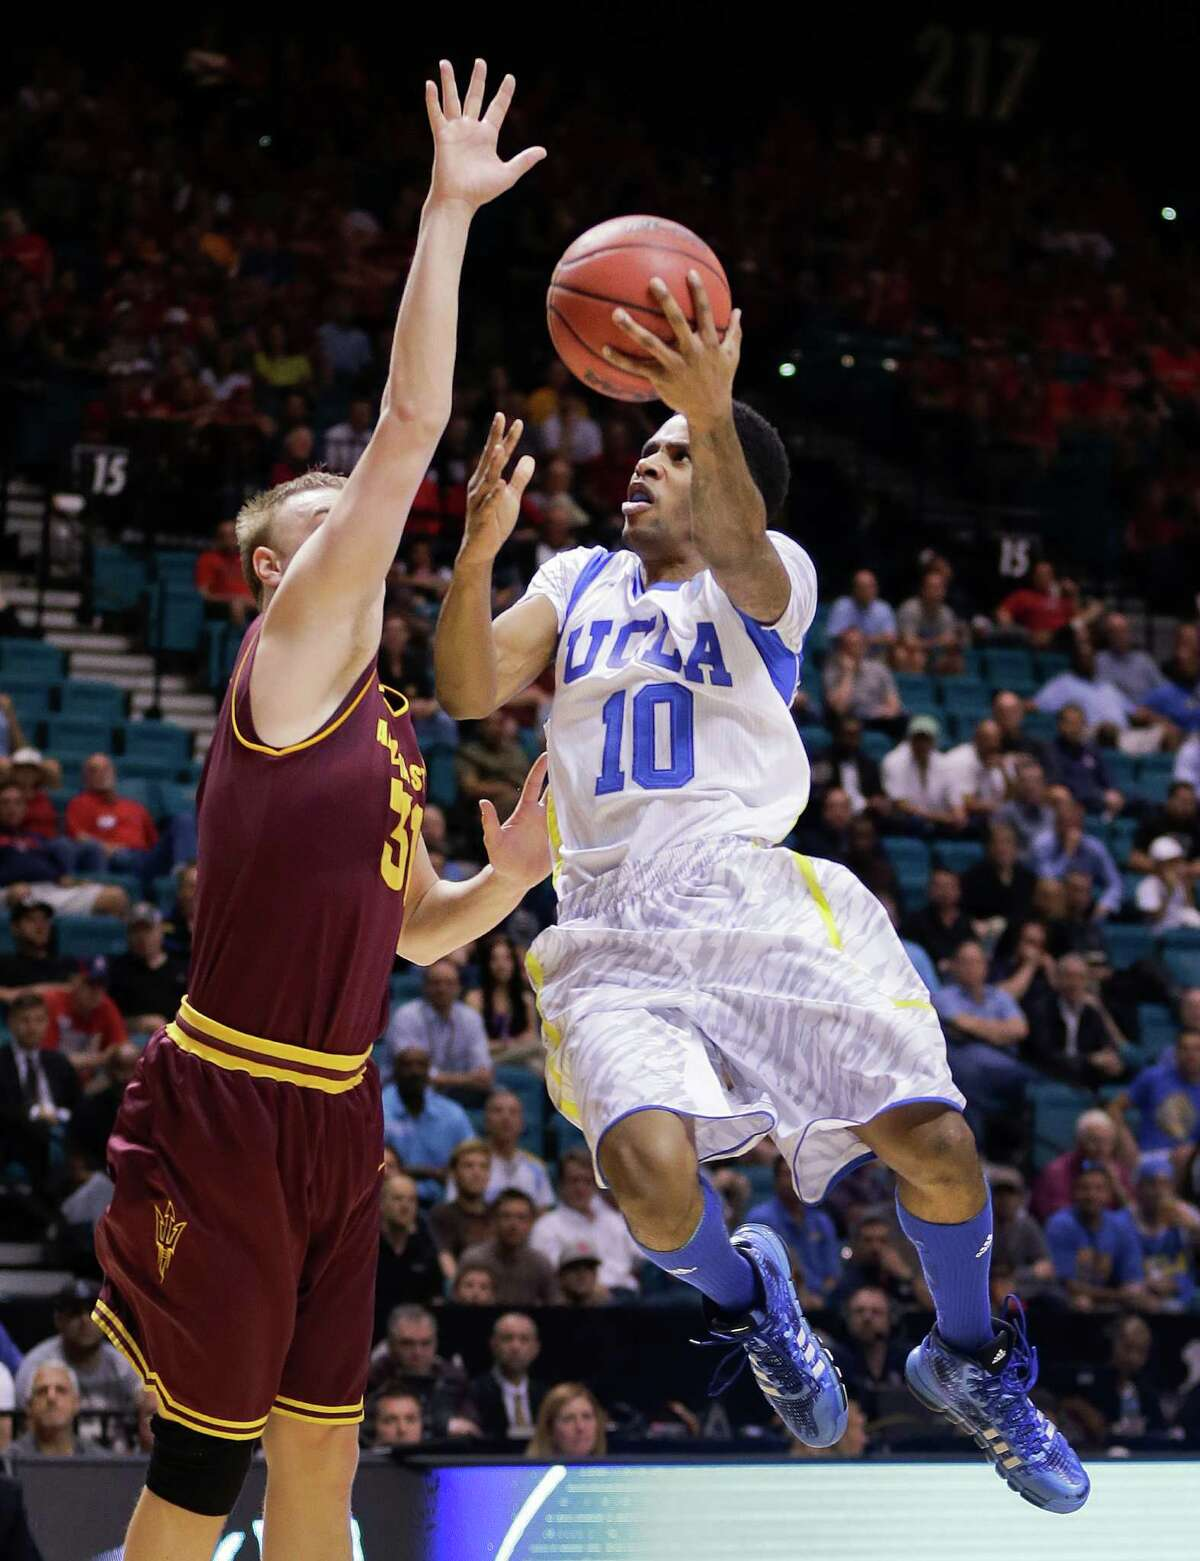 This March 14, 2013, file photo shows UCLA's Larry Drew II (10) as he goes up for a shot against Arizona State's Jonathan Gilling during the first half of a Pac-12 men's tournament NCAA college basketball game in Las Vegas. The neon-colored jerseys and camouflage-covered shorts debuted by six teams in their post-season conference championships ahead of the NCAA men's basketball tournament weren't well received in the press and social media. The changes happened to be in line with fashion runways and in recreational athleticwear, where highlighter brights and creative camo have been bona fide trends, and alternate uniforms have become part of the college football and basketball landscape, but on the court, these uniforms still made fans cringe.